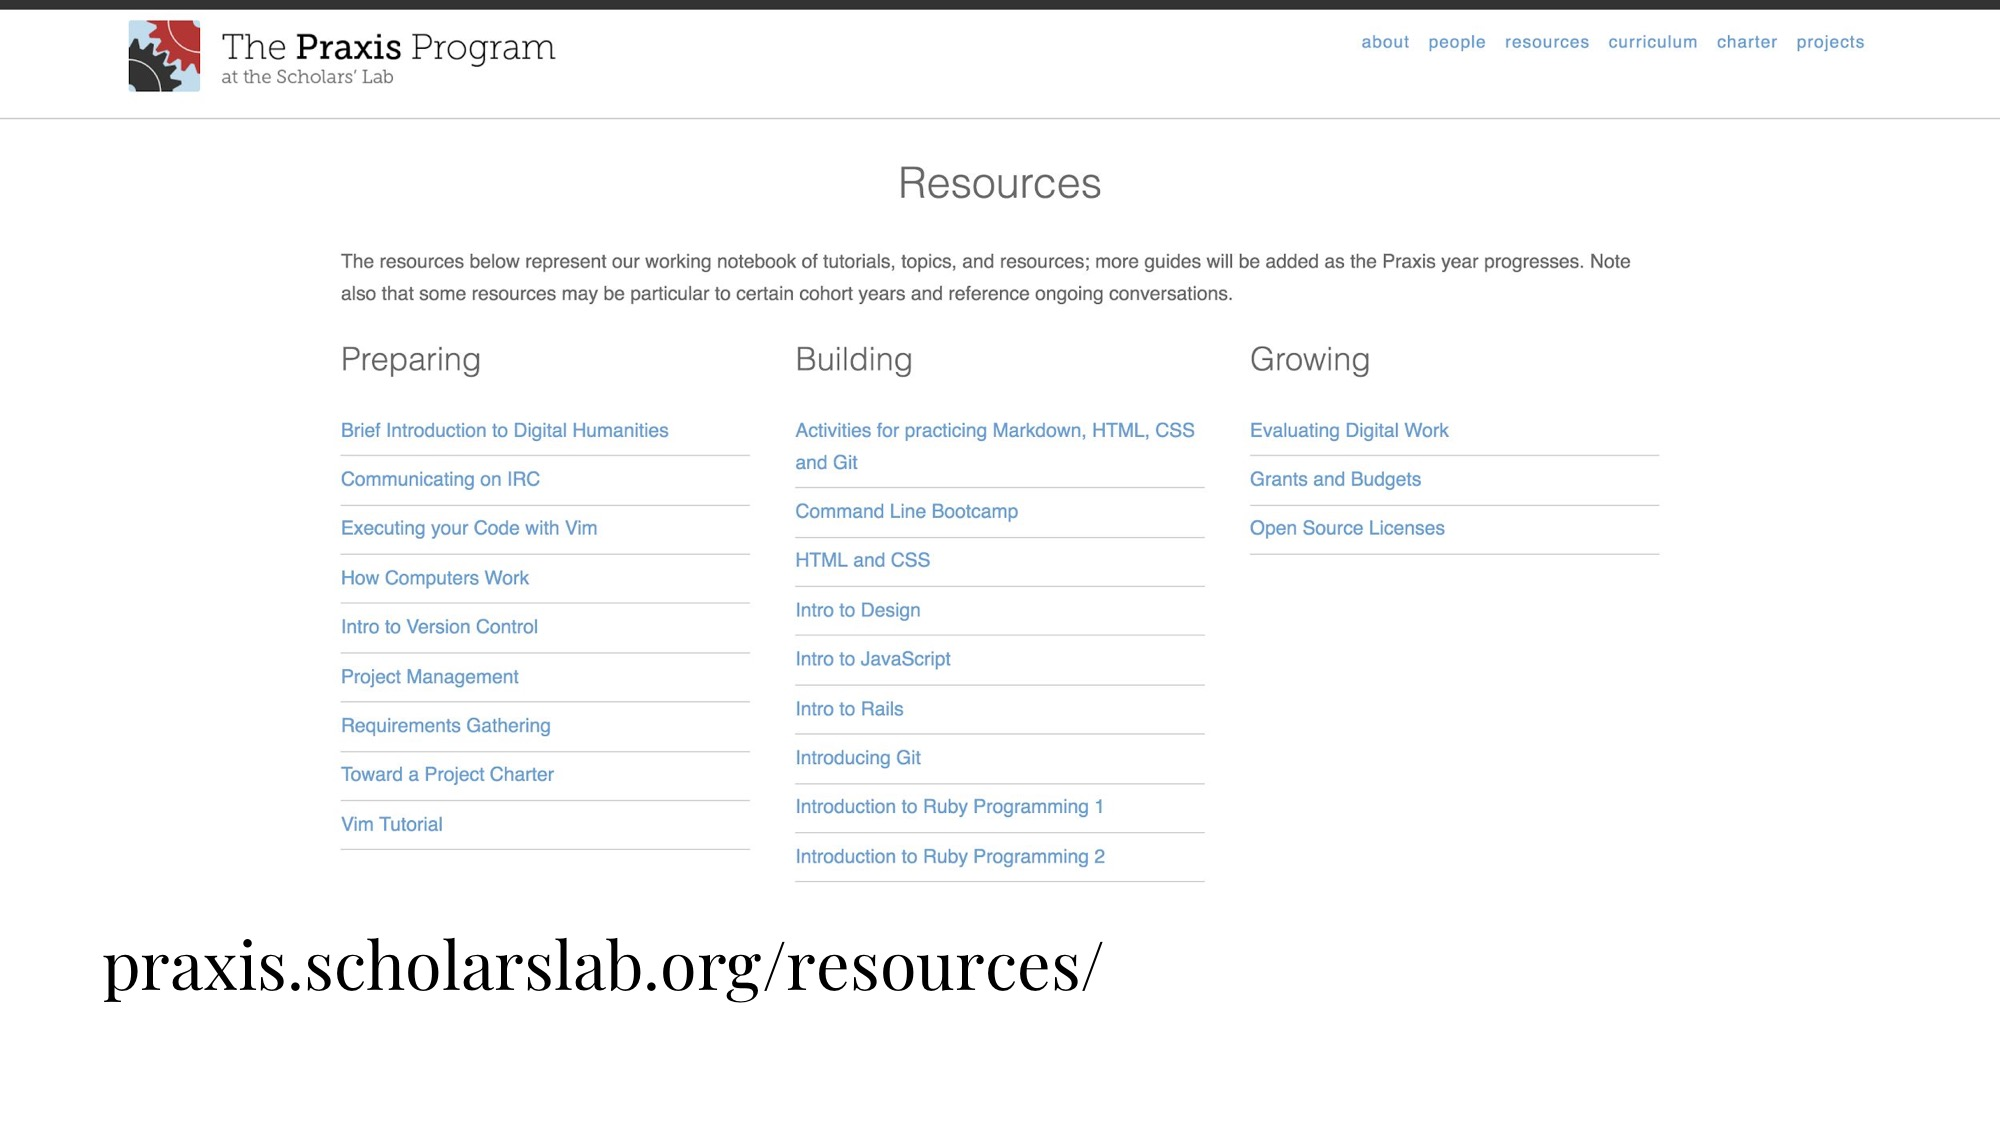 image of Praxis resources and curriculum published online